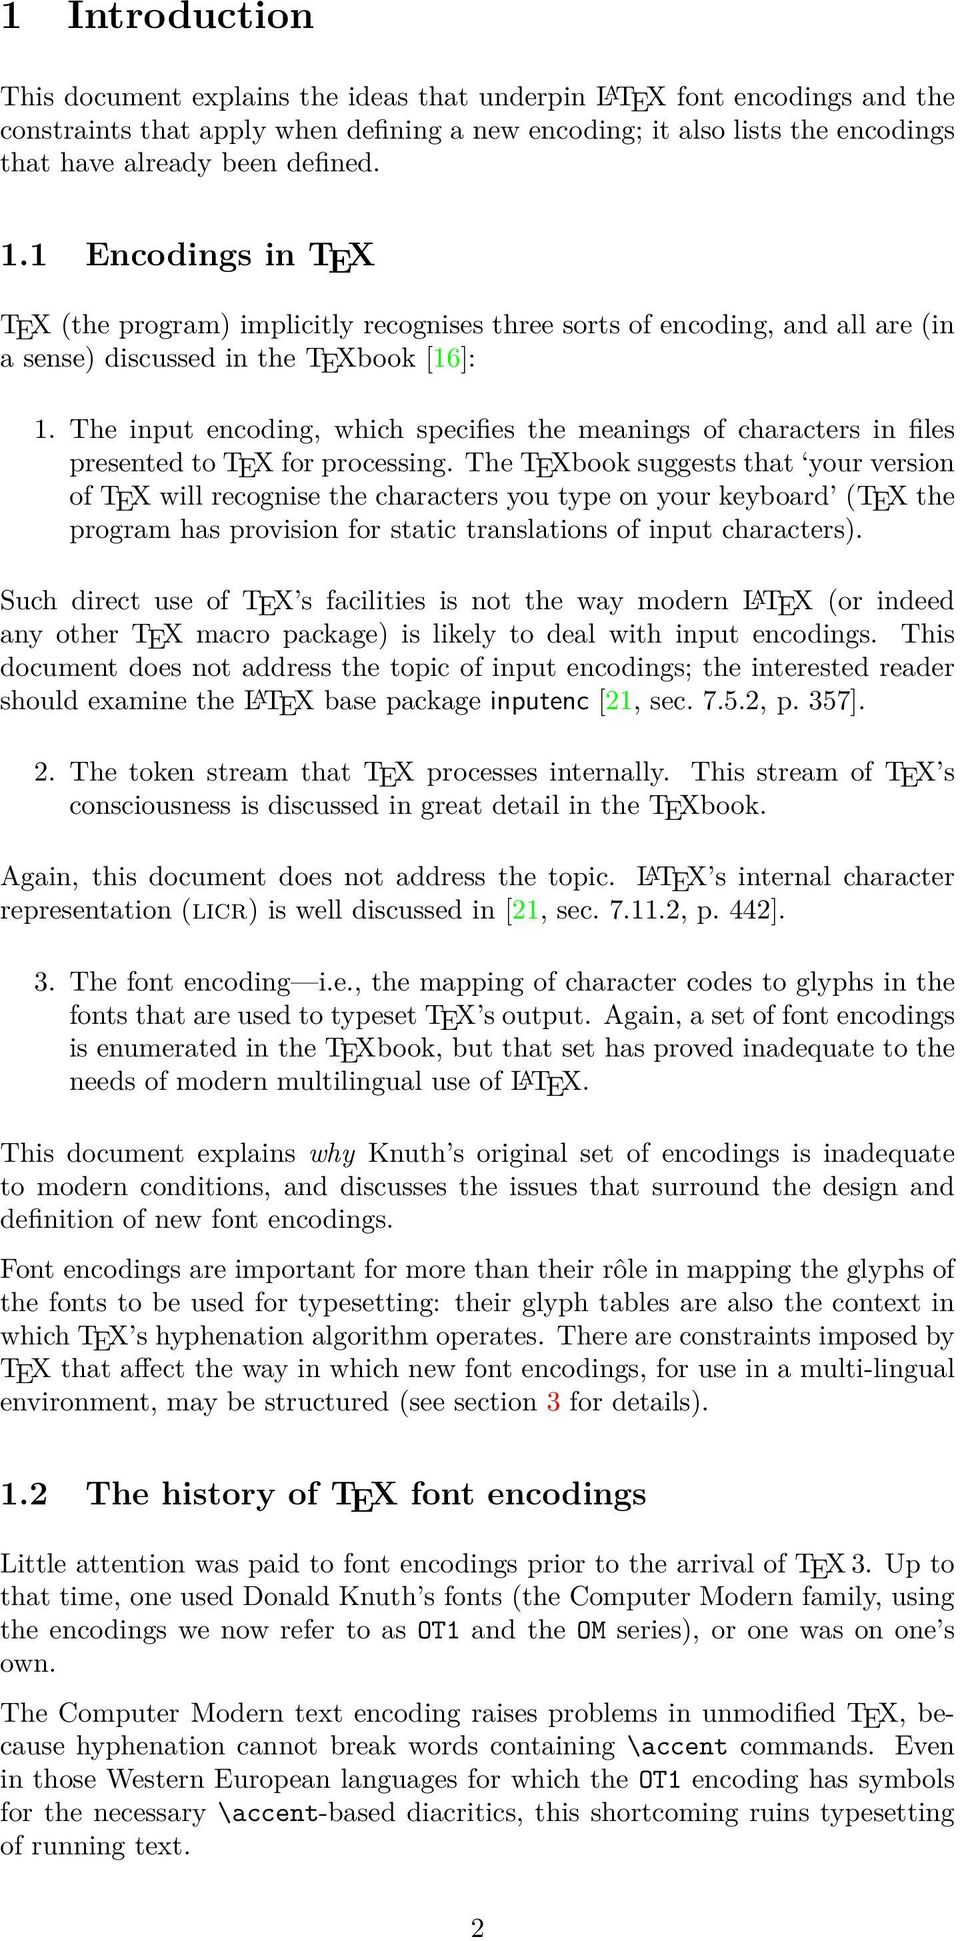 L A TEX font encodings - PDF